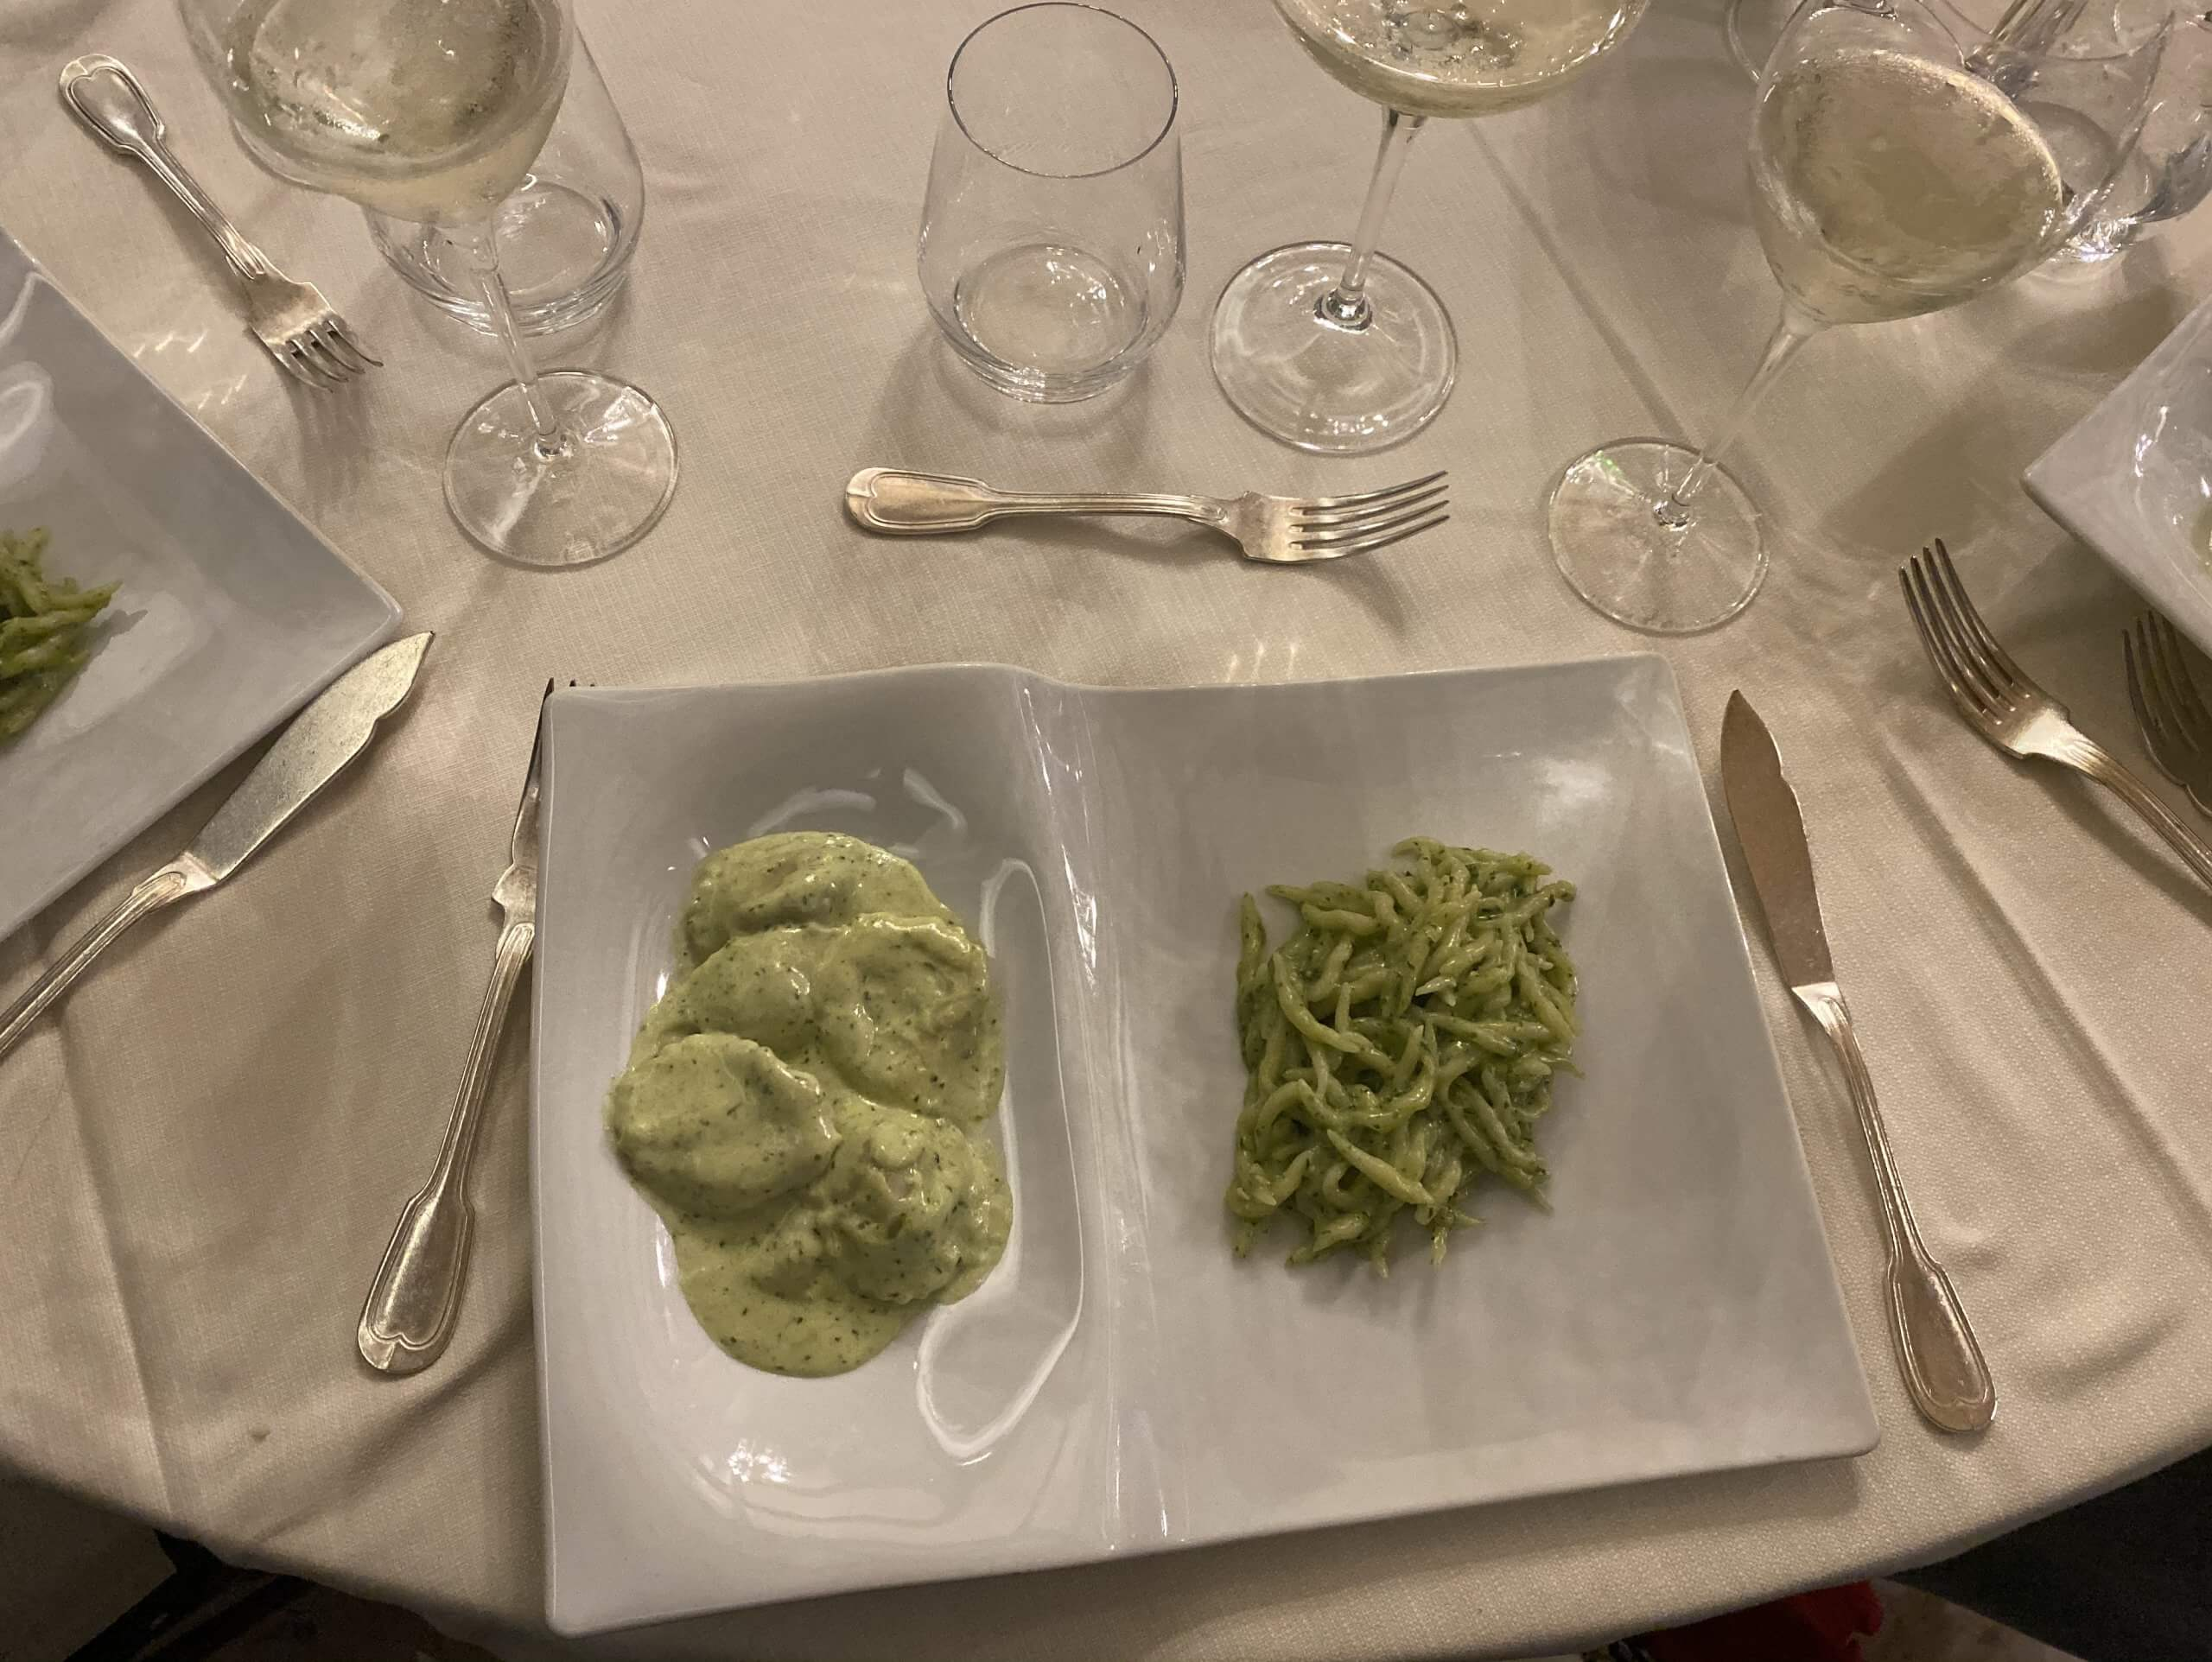 bezienswaardigheden in Genua is pesto maken